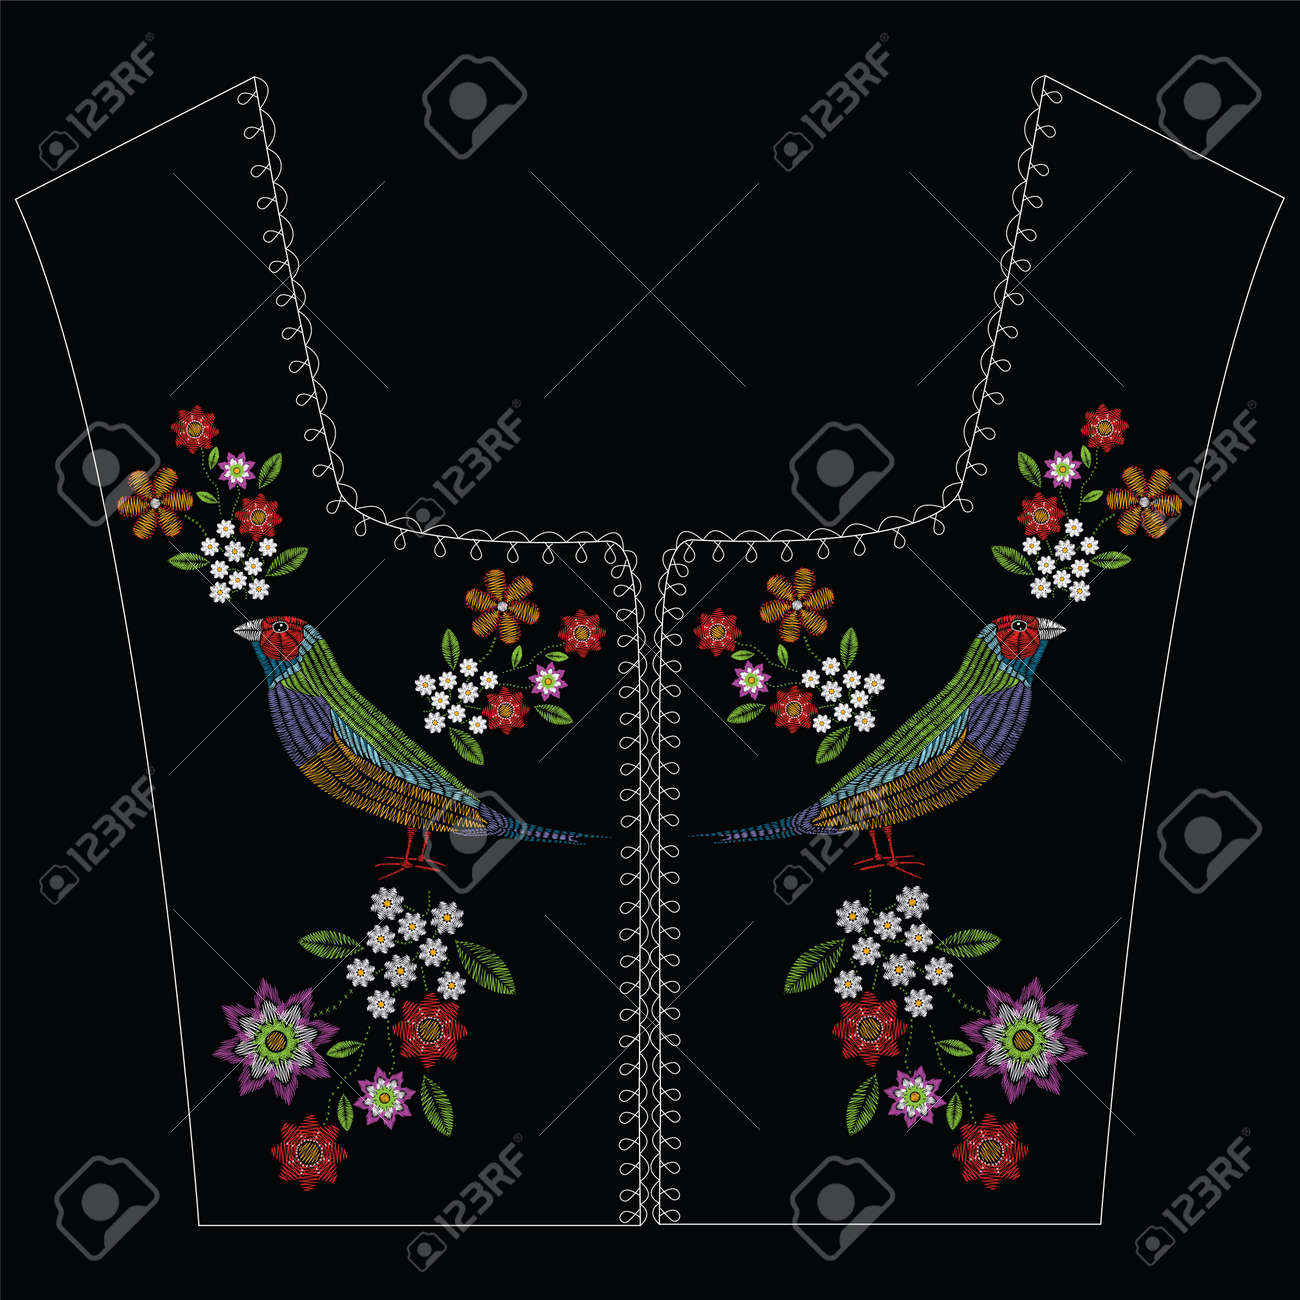 Vector illustration embroidery stitches with gouldian finch, chamomile wildflowers, spring flowers, branches in color. Vector floral ornament folk decoration. Pattern for textile. Print for fabrics. - 80447041